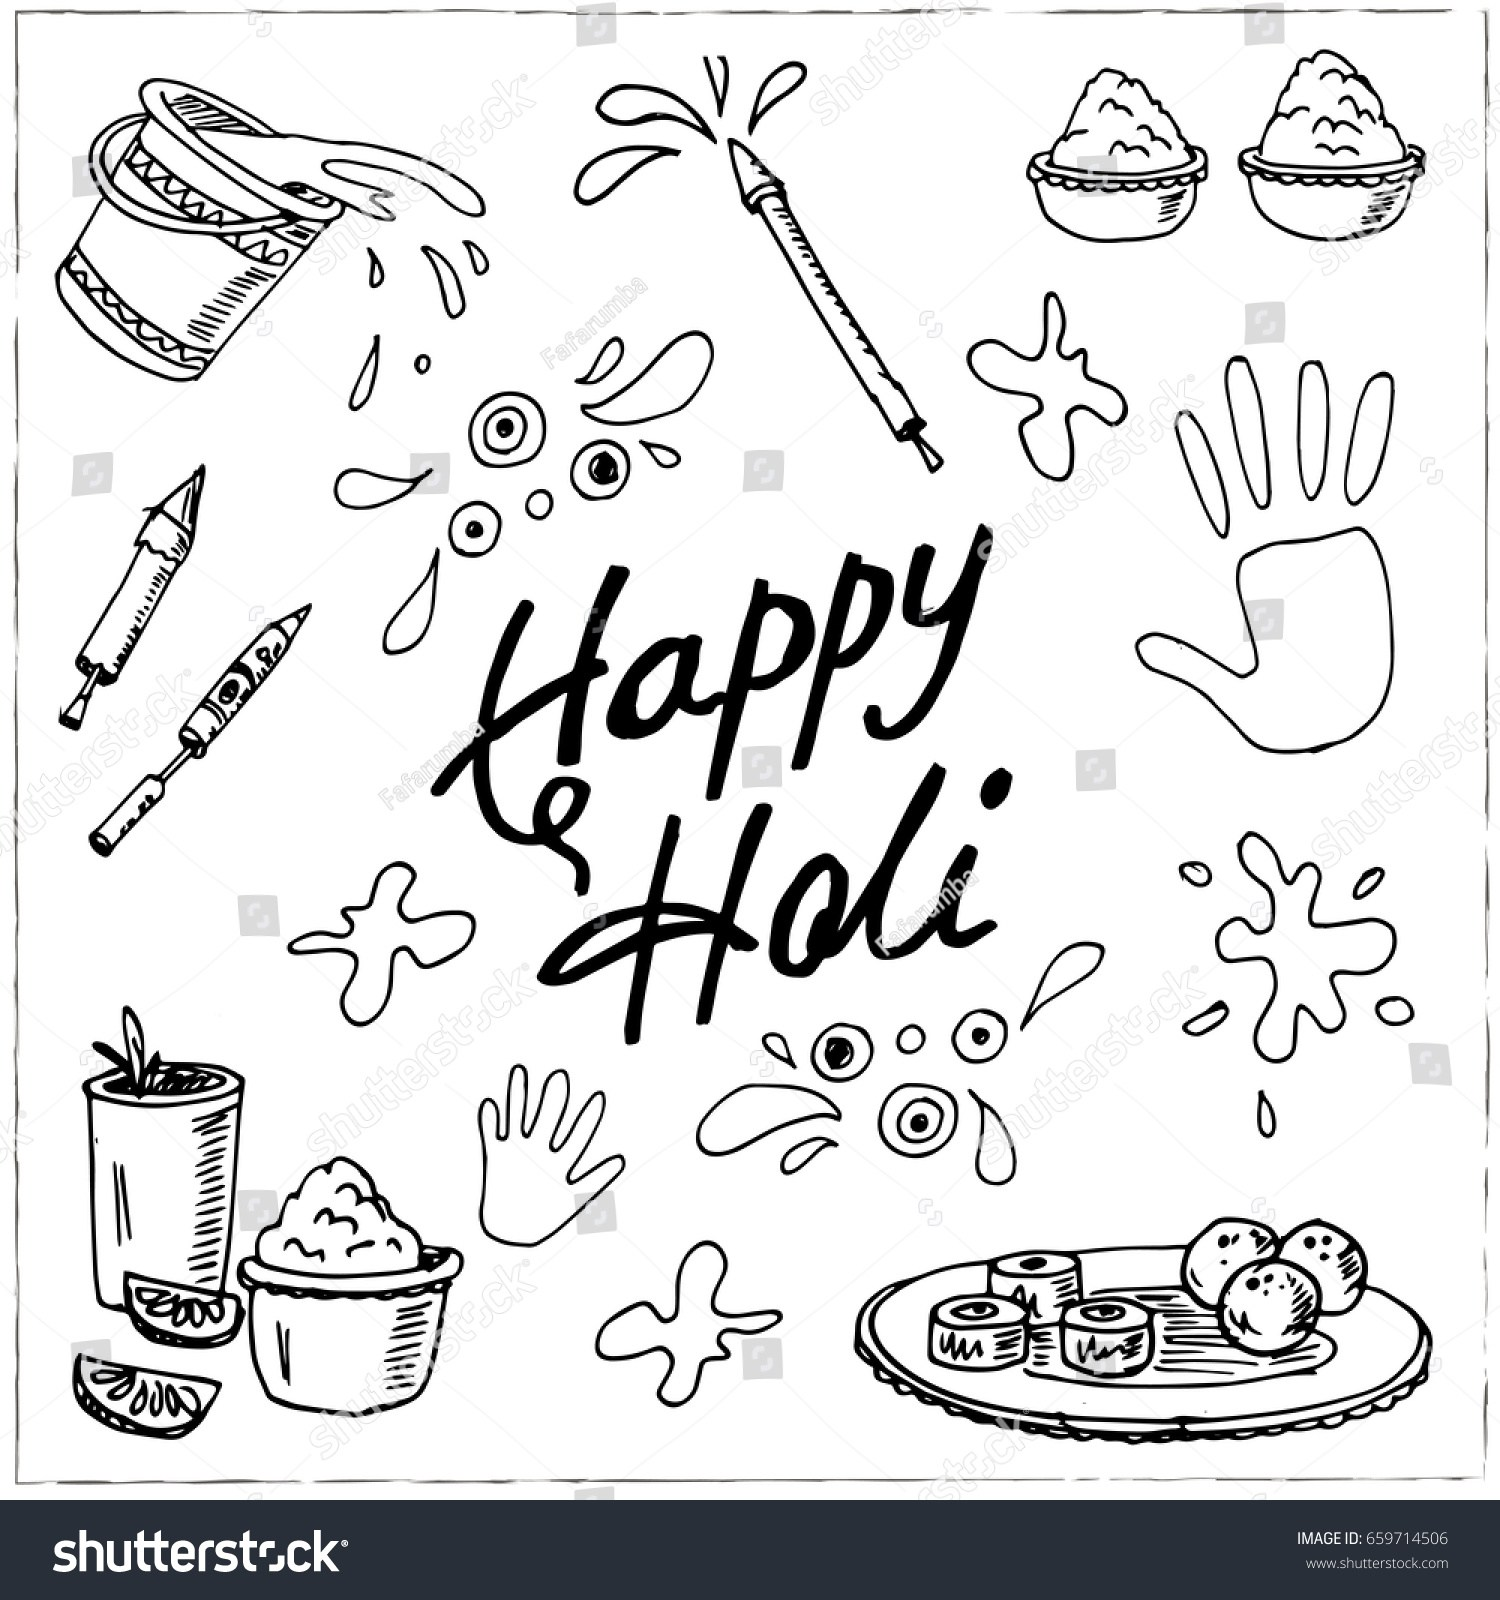 Holi clipart black and white 7 » Clipart Portal.